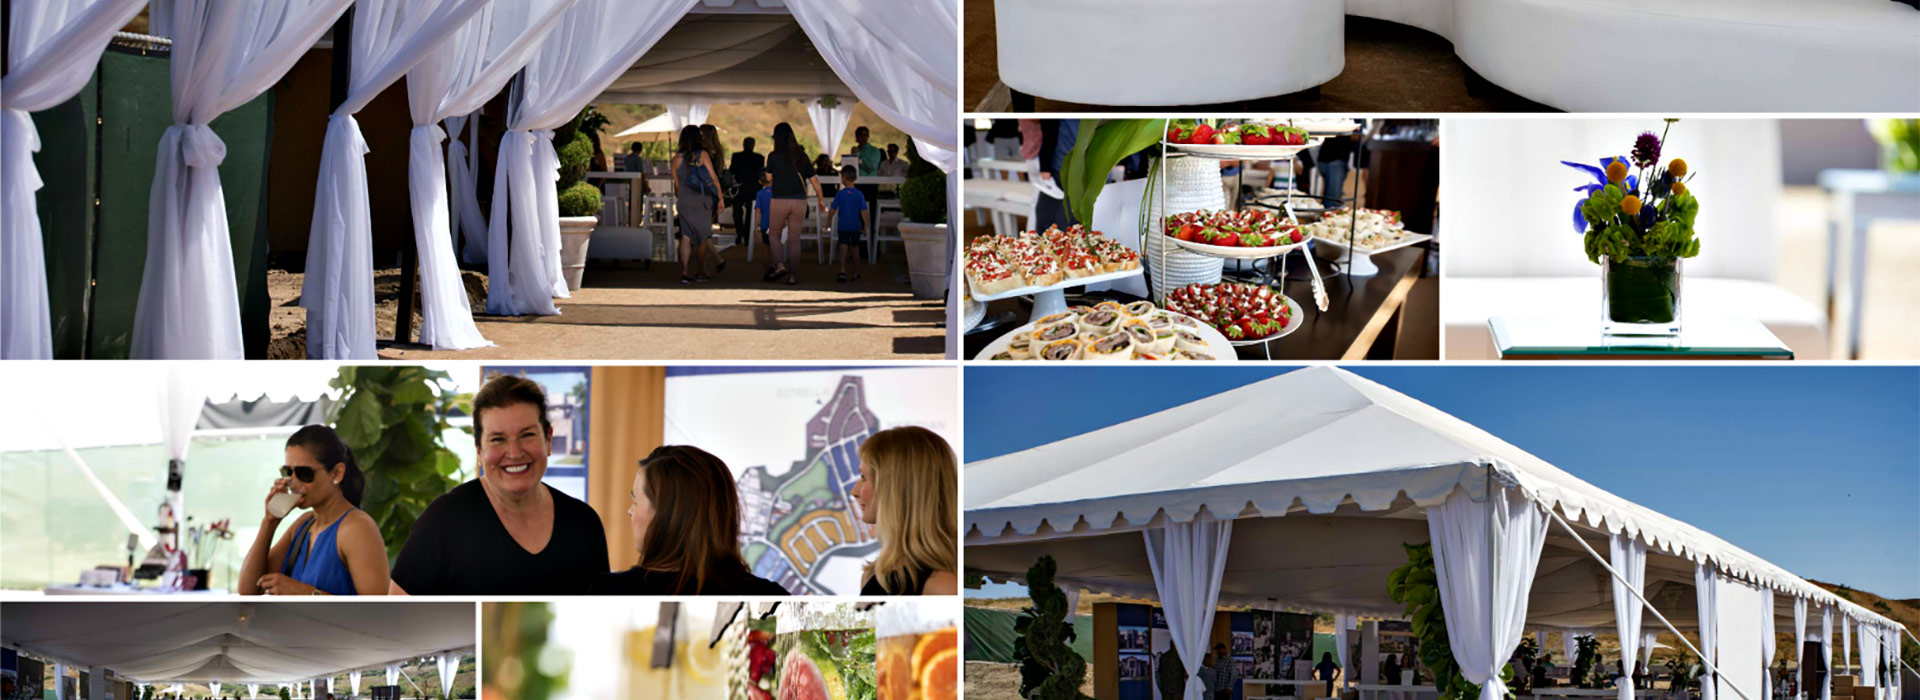 Suzannes-Catering-services-huntington-beach